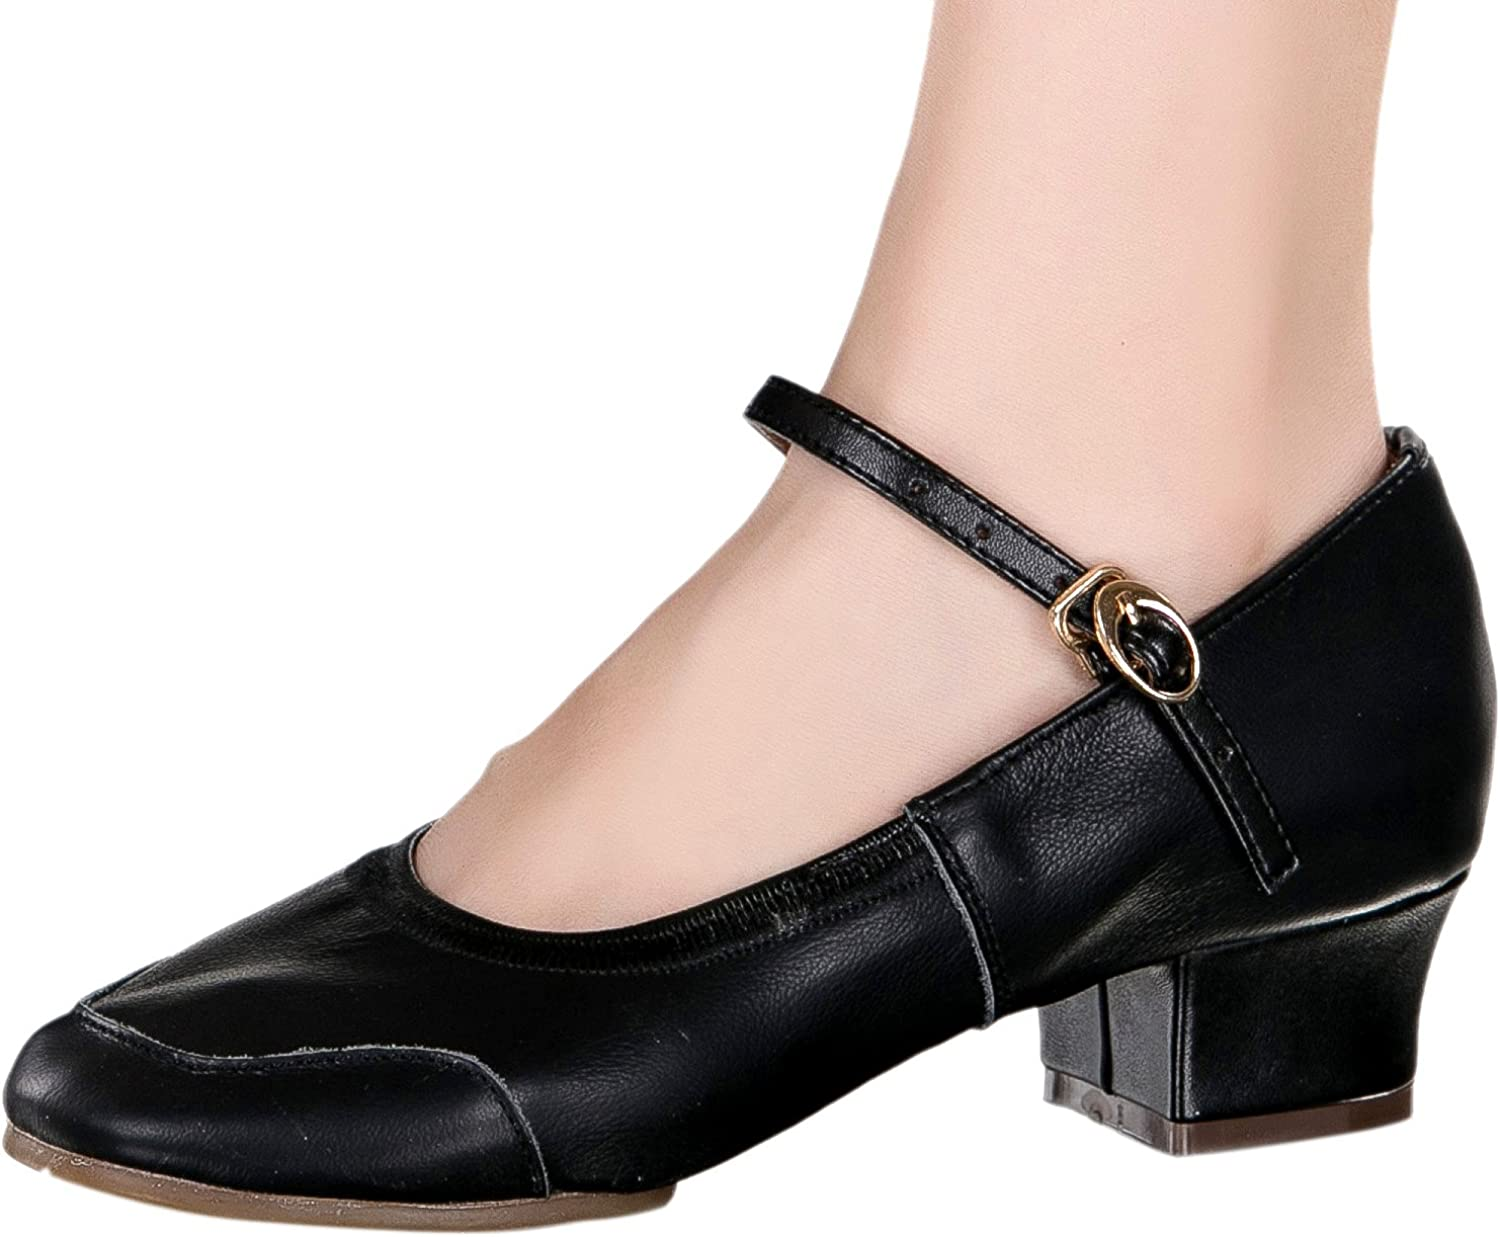 Honeystore Classic Women's Cow Leather Salsa Latin Dance shoes Mary Jane